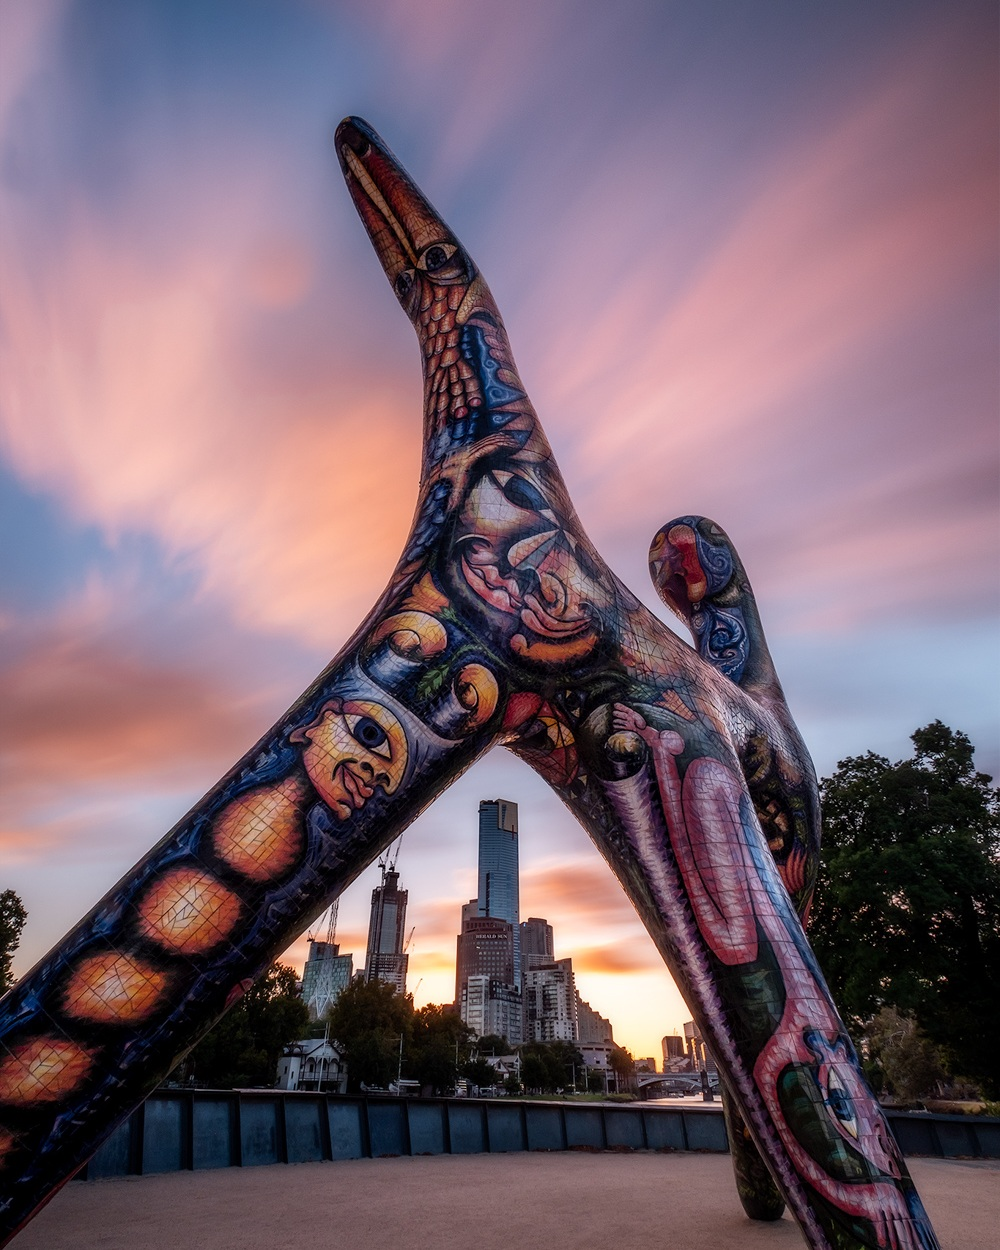 Melbourne-Sculpture-sunset.jpg